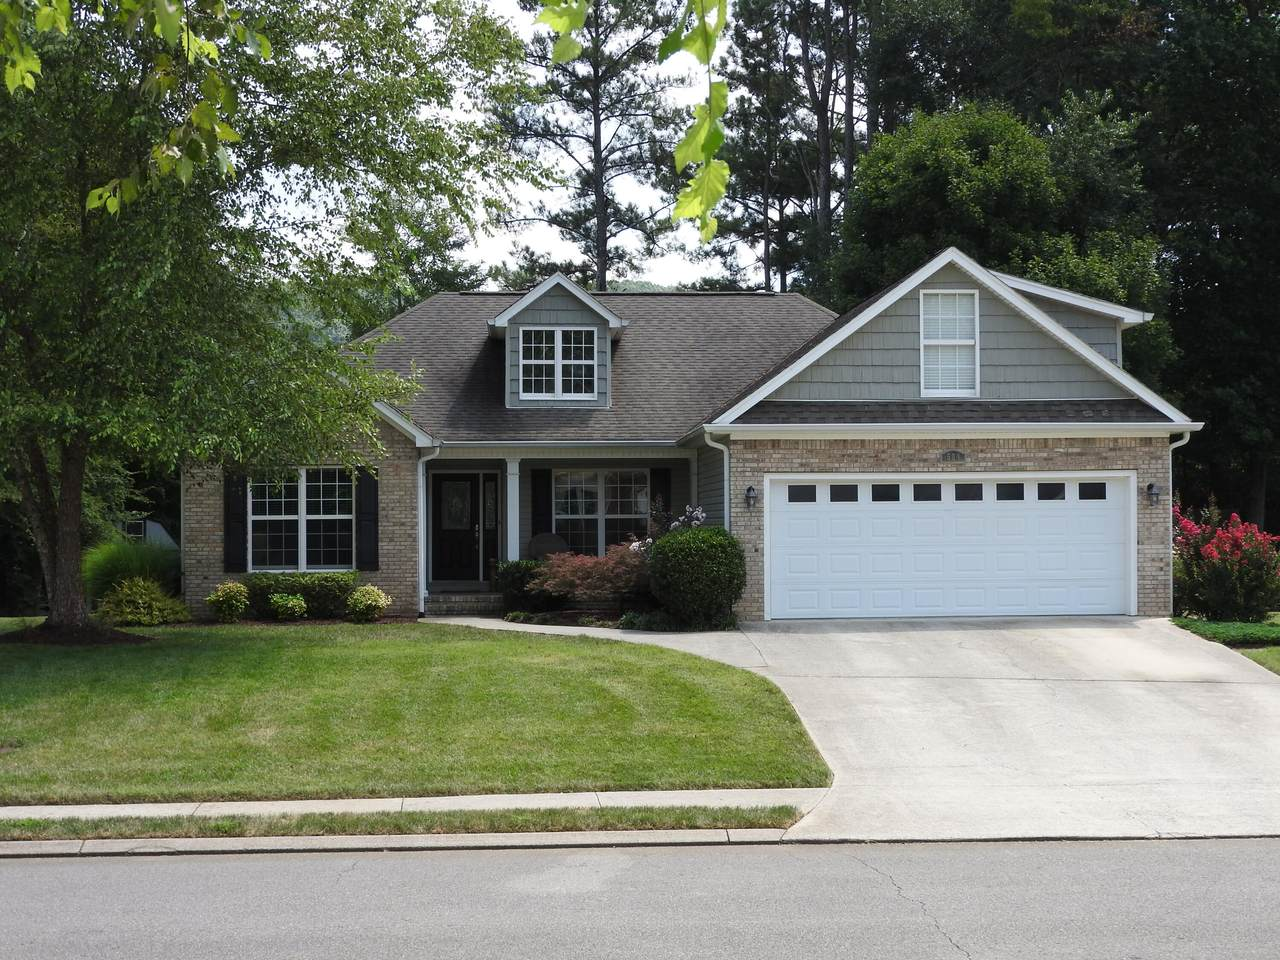 504 Thoroughbred Dr - Photo 1